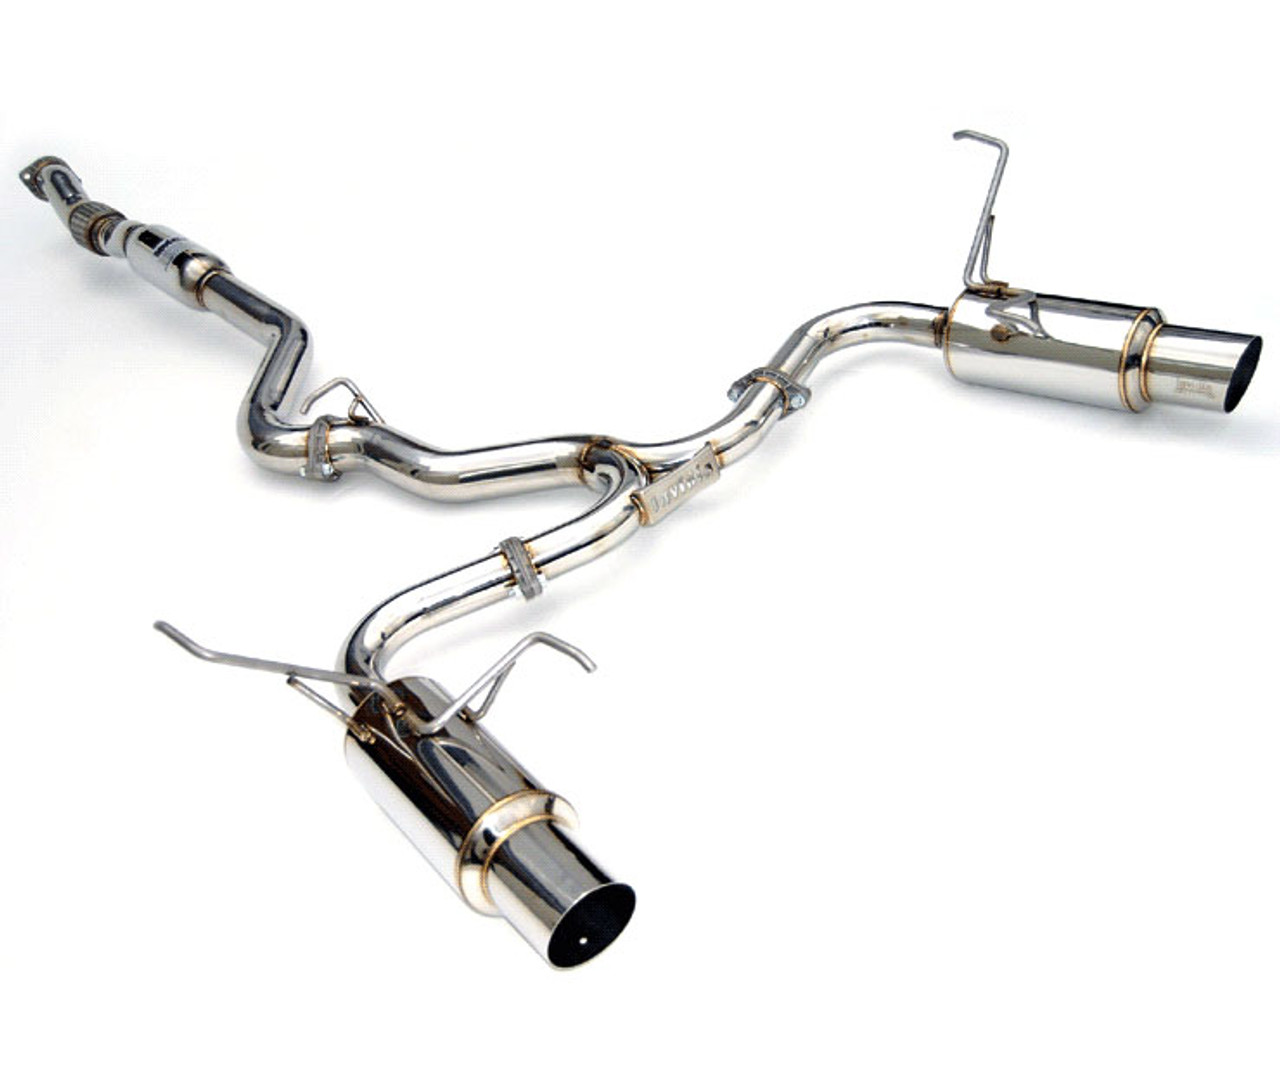 invidia n1 cat back exhaust dual stainless or burnt tip 2015 wrx sti